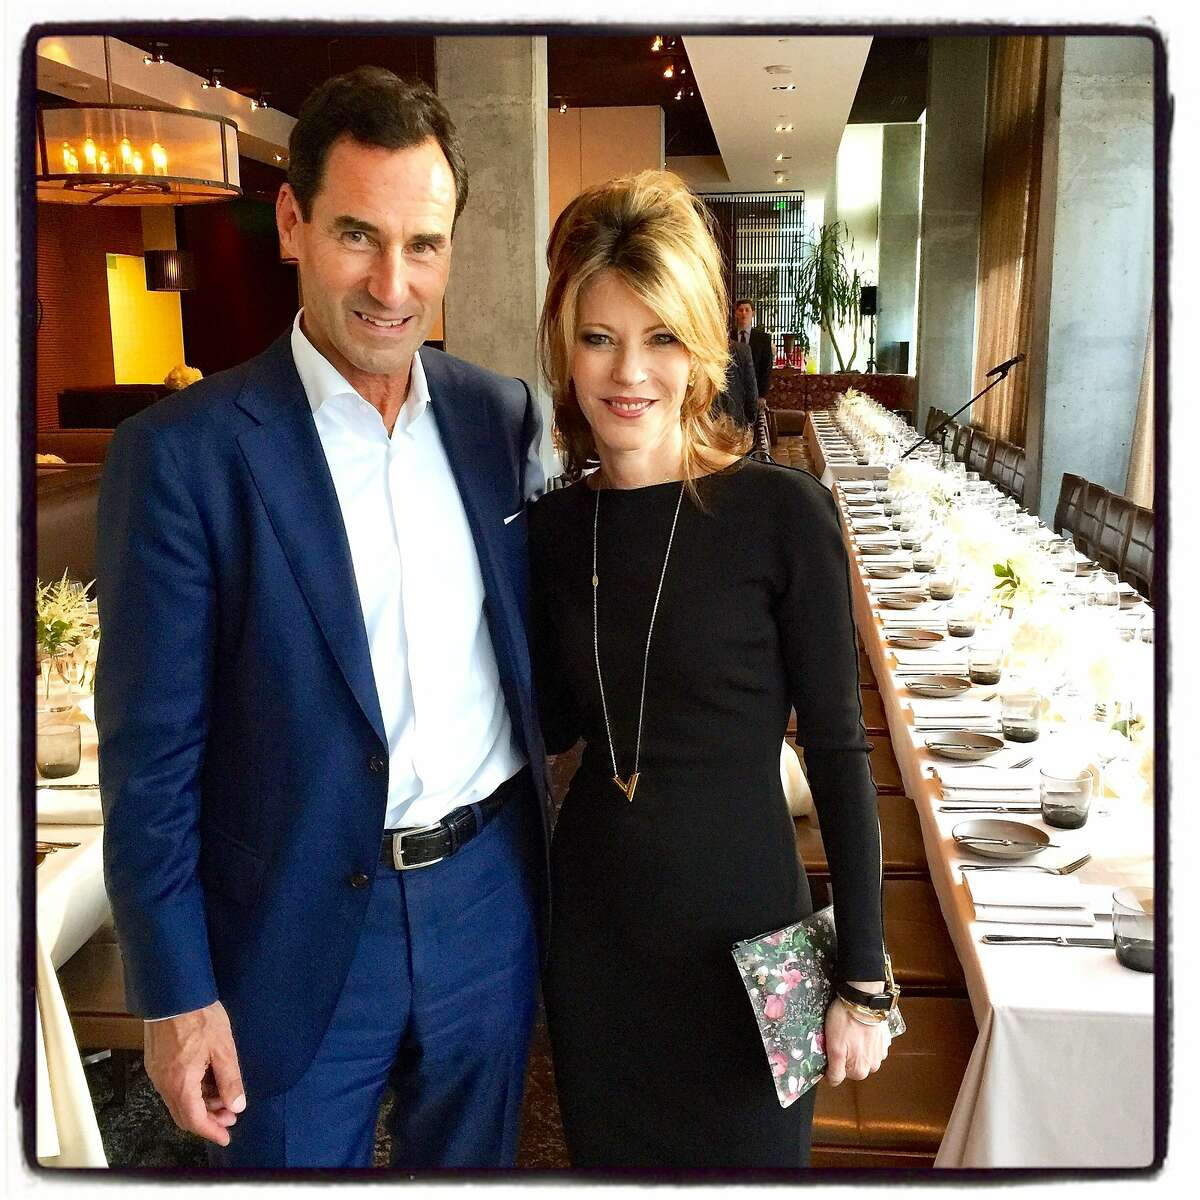 Elle Publisher Kevin O'Malley and Elle Editor-in-Chief Robbie Myers at the Elle Women in Tech dinner at Prospect Restaurant. June 2015. By Catherine Bigelow.